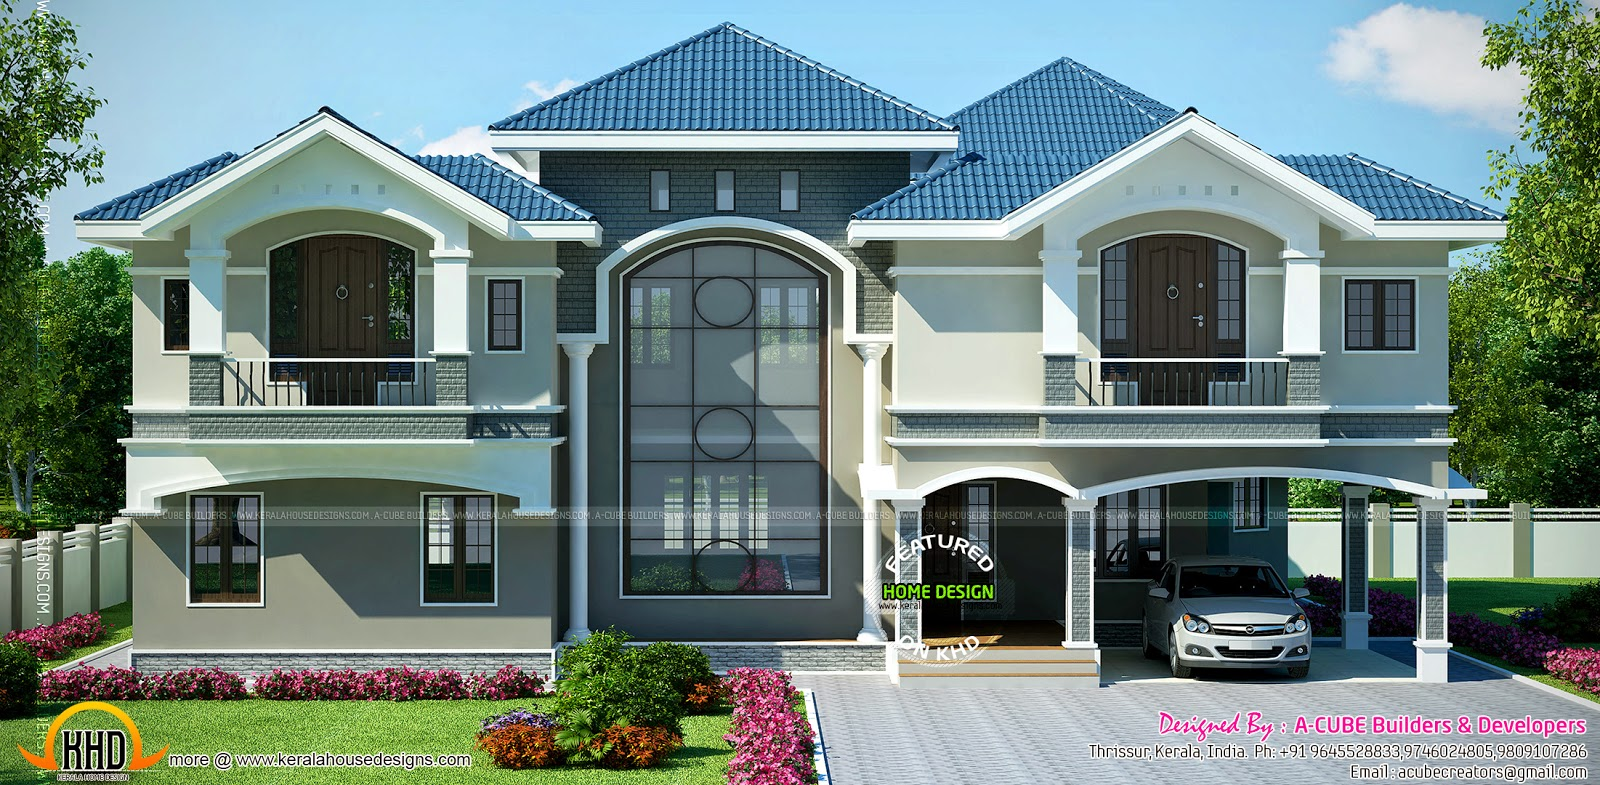 Super luxury house in beautiful style Kerala home design and floor plans